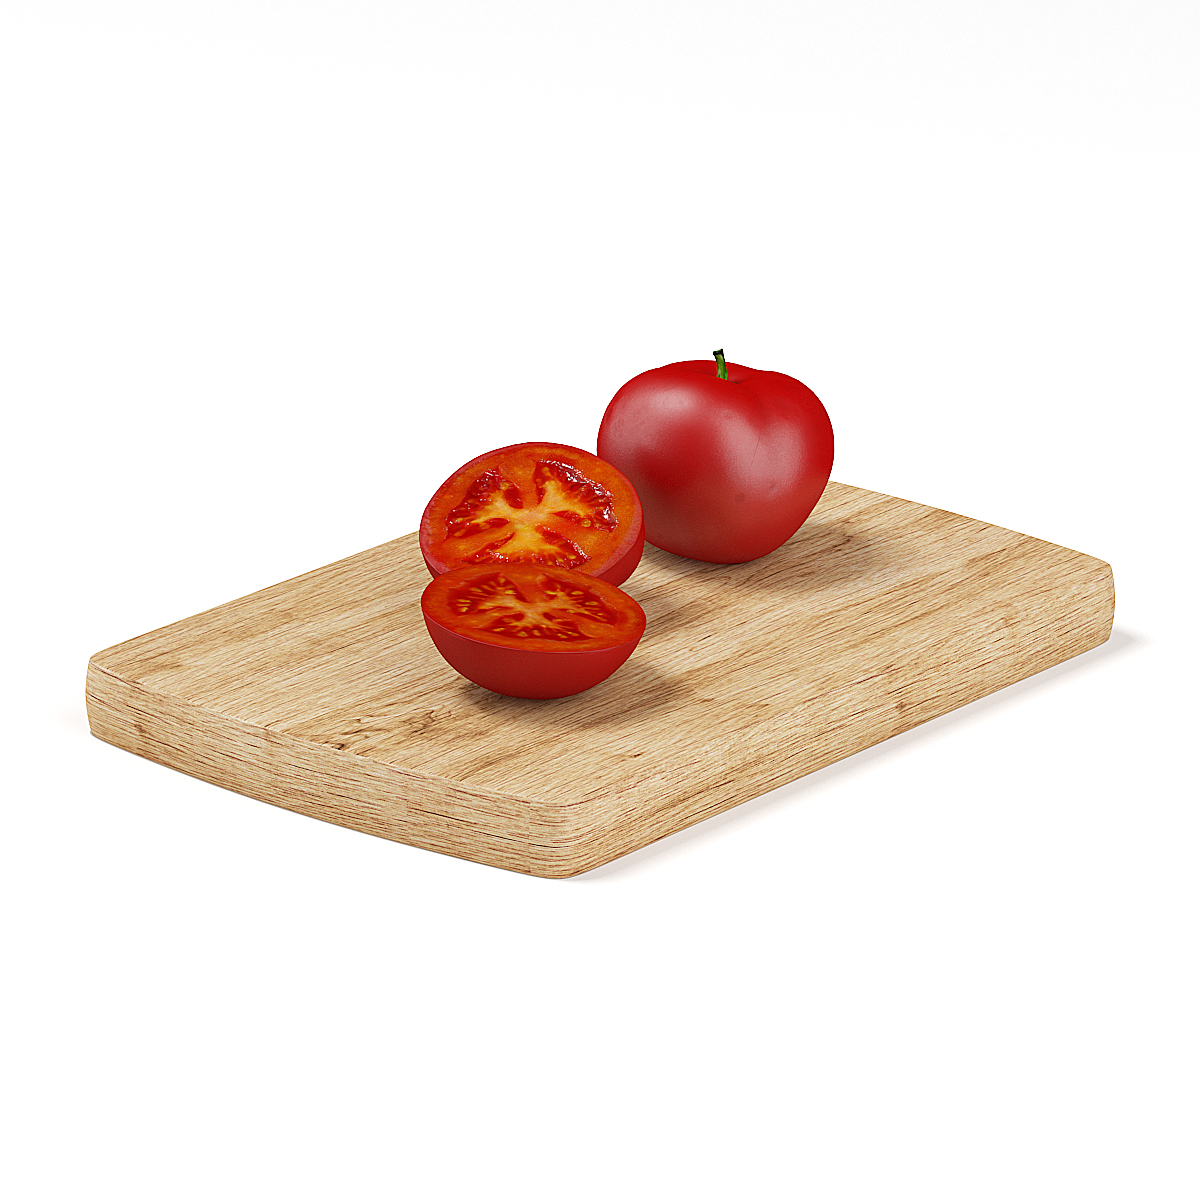 Whole And Sliced Tomato